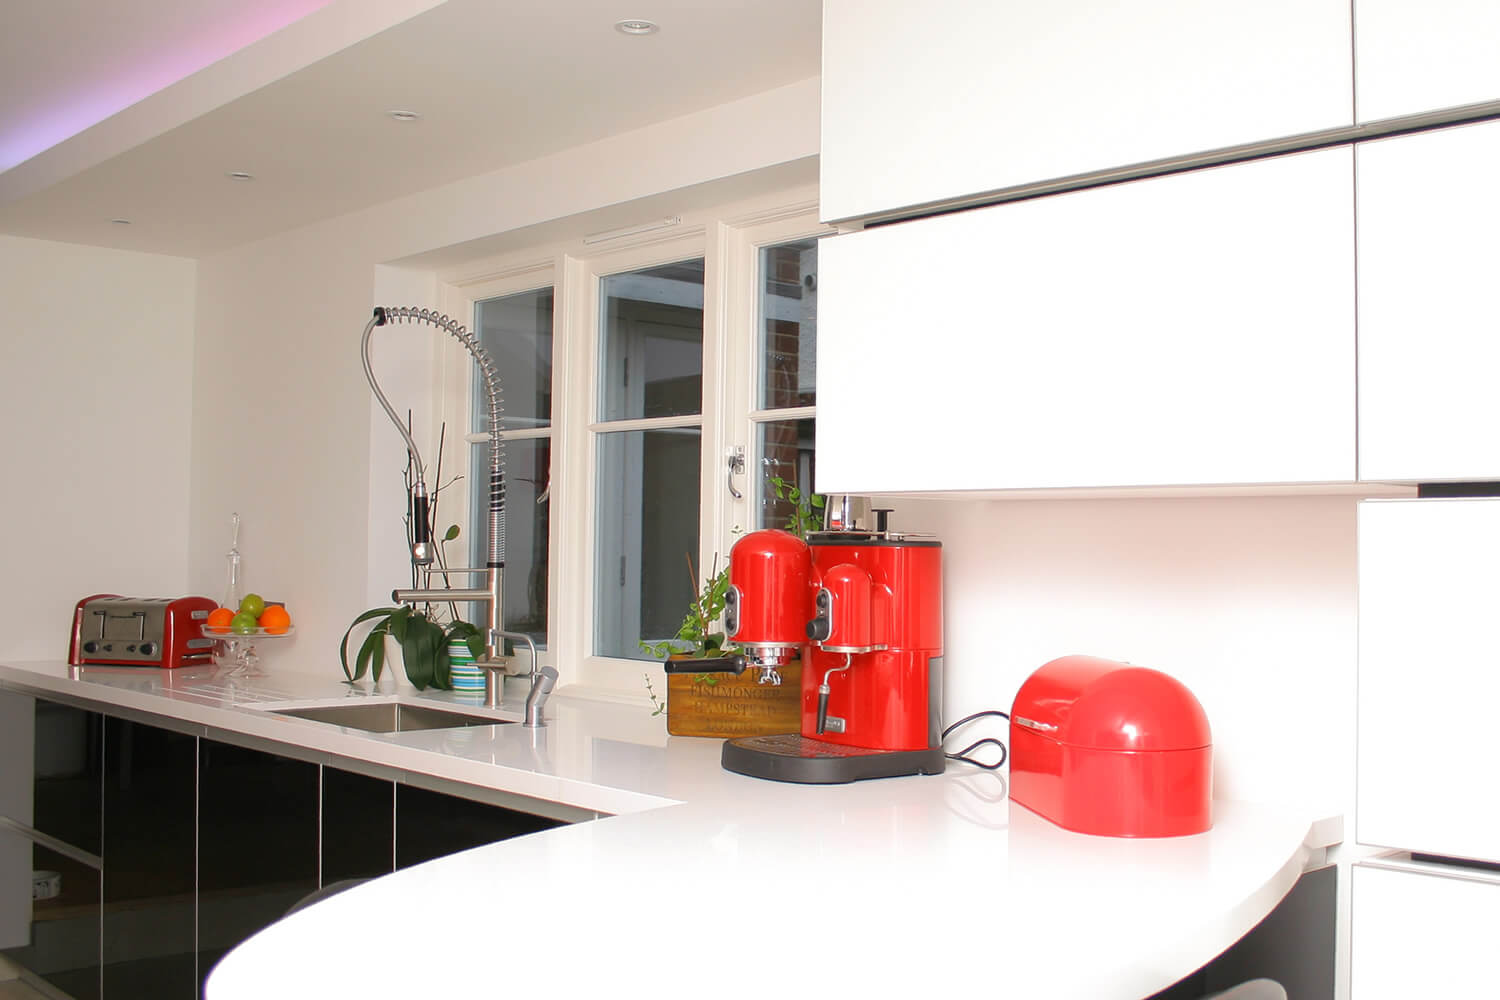 White kitchen with red kitchen electronics